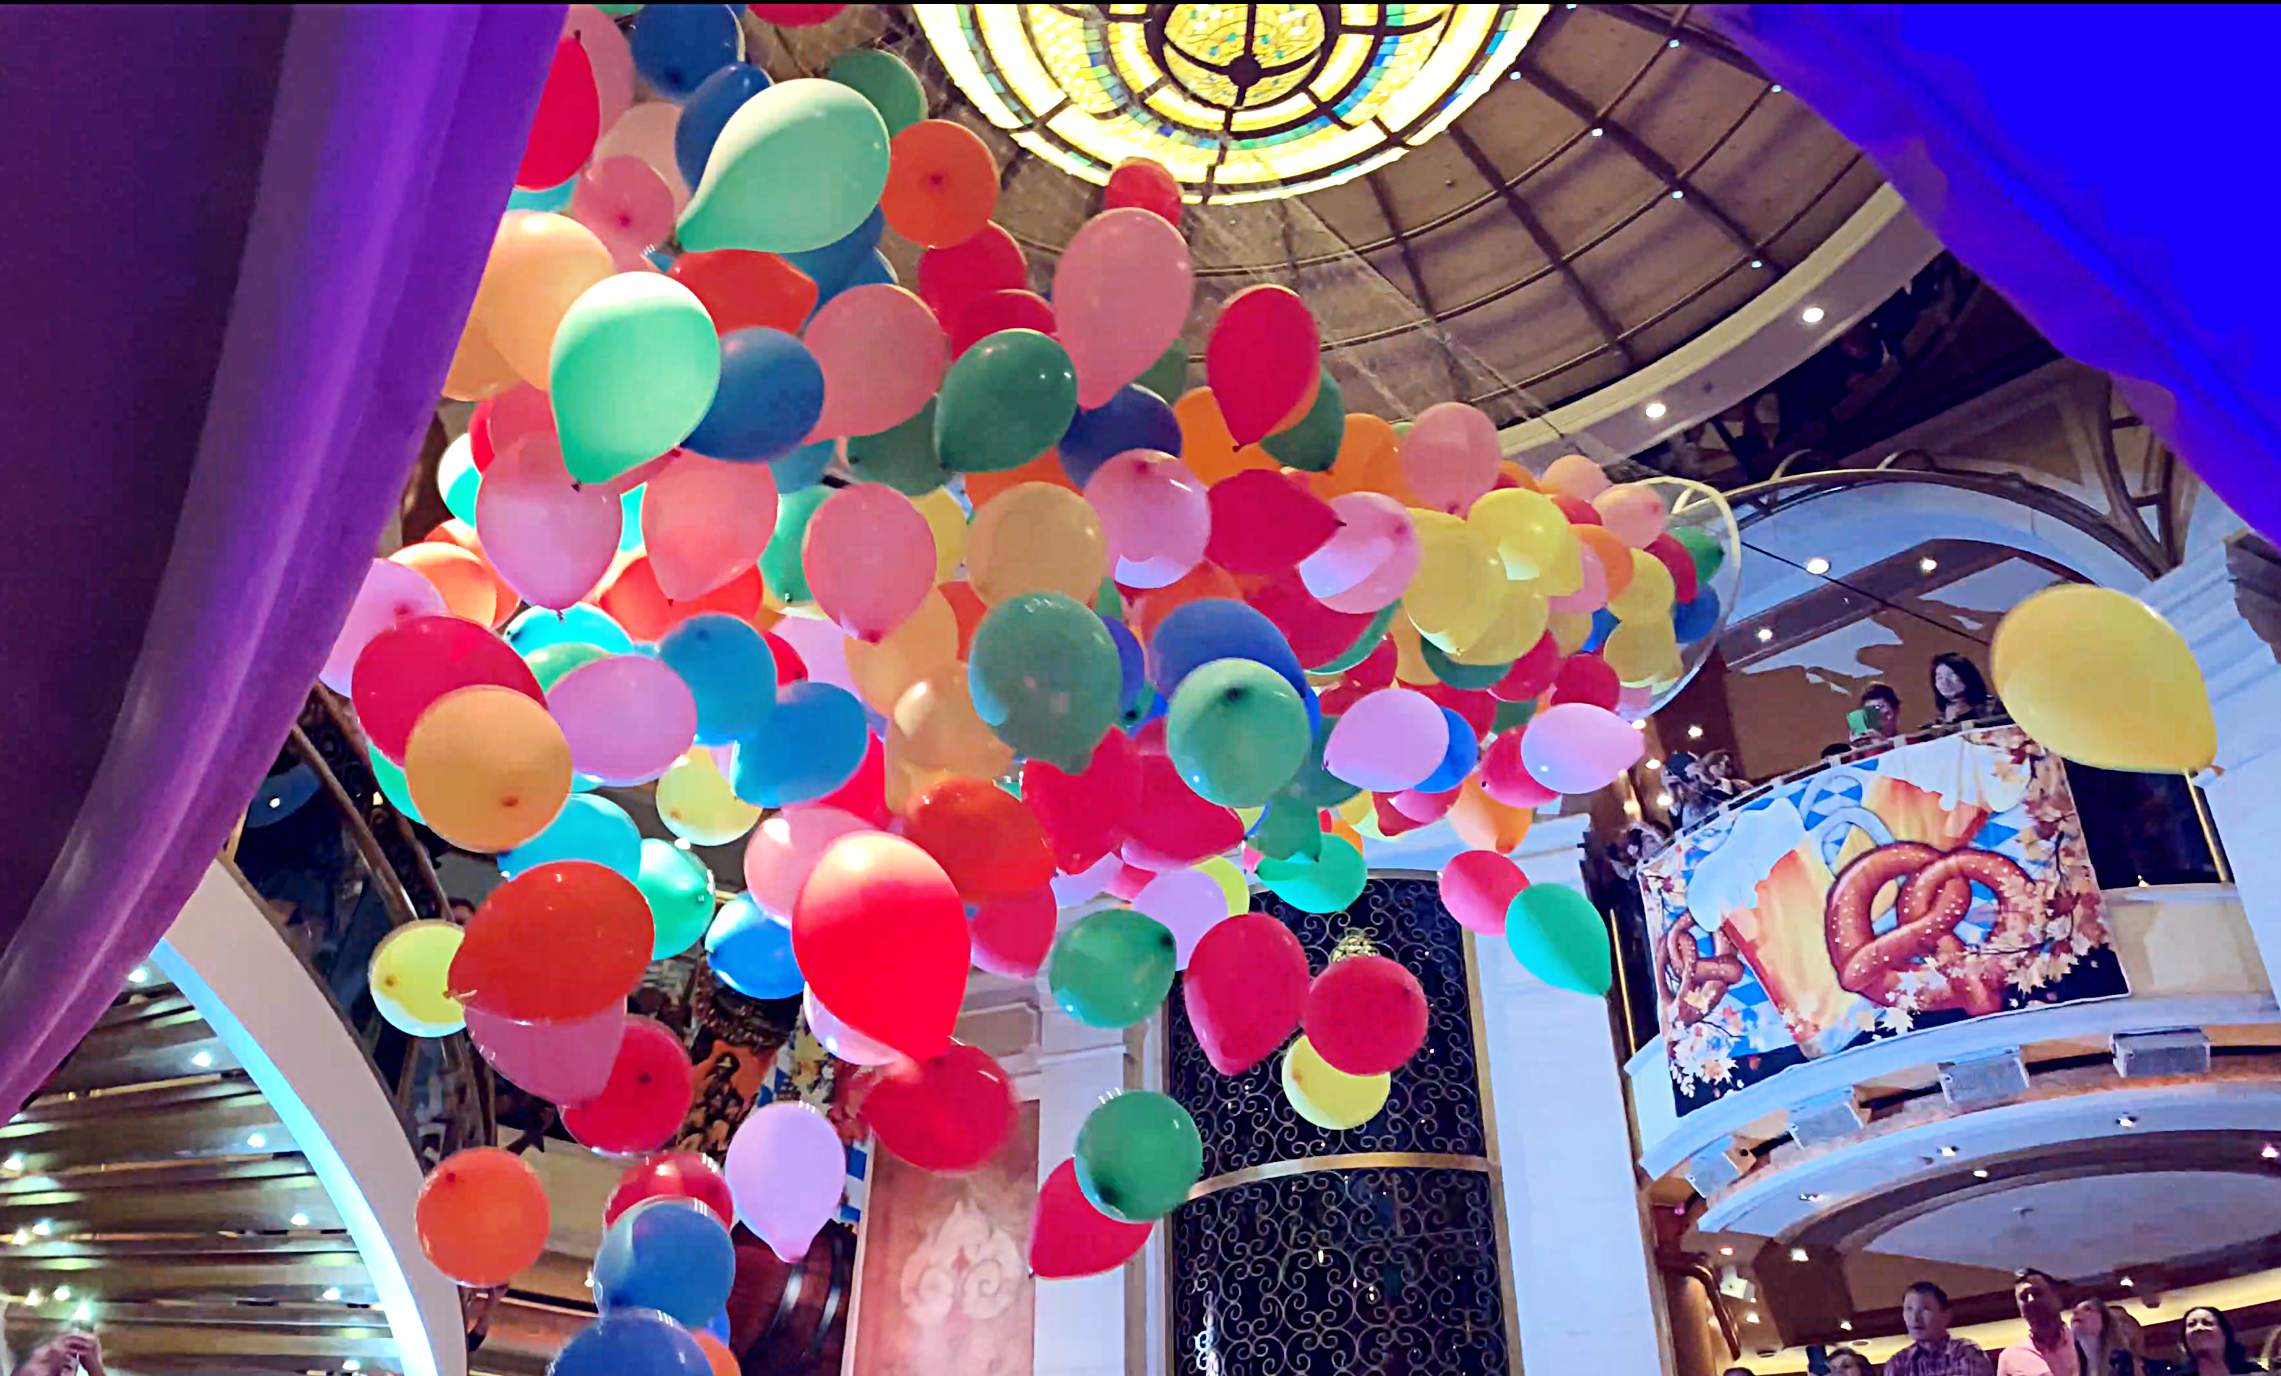 And continues with the colourful balloon drop!